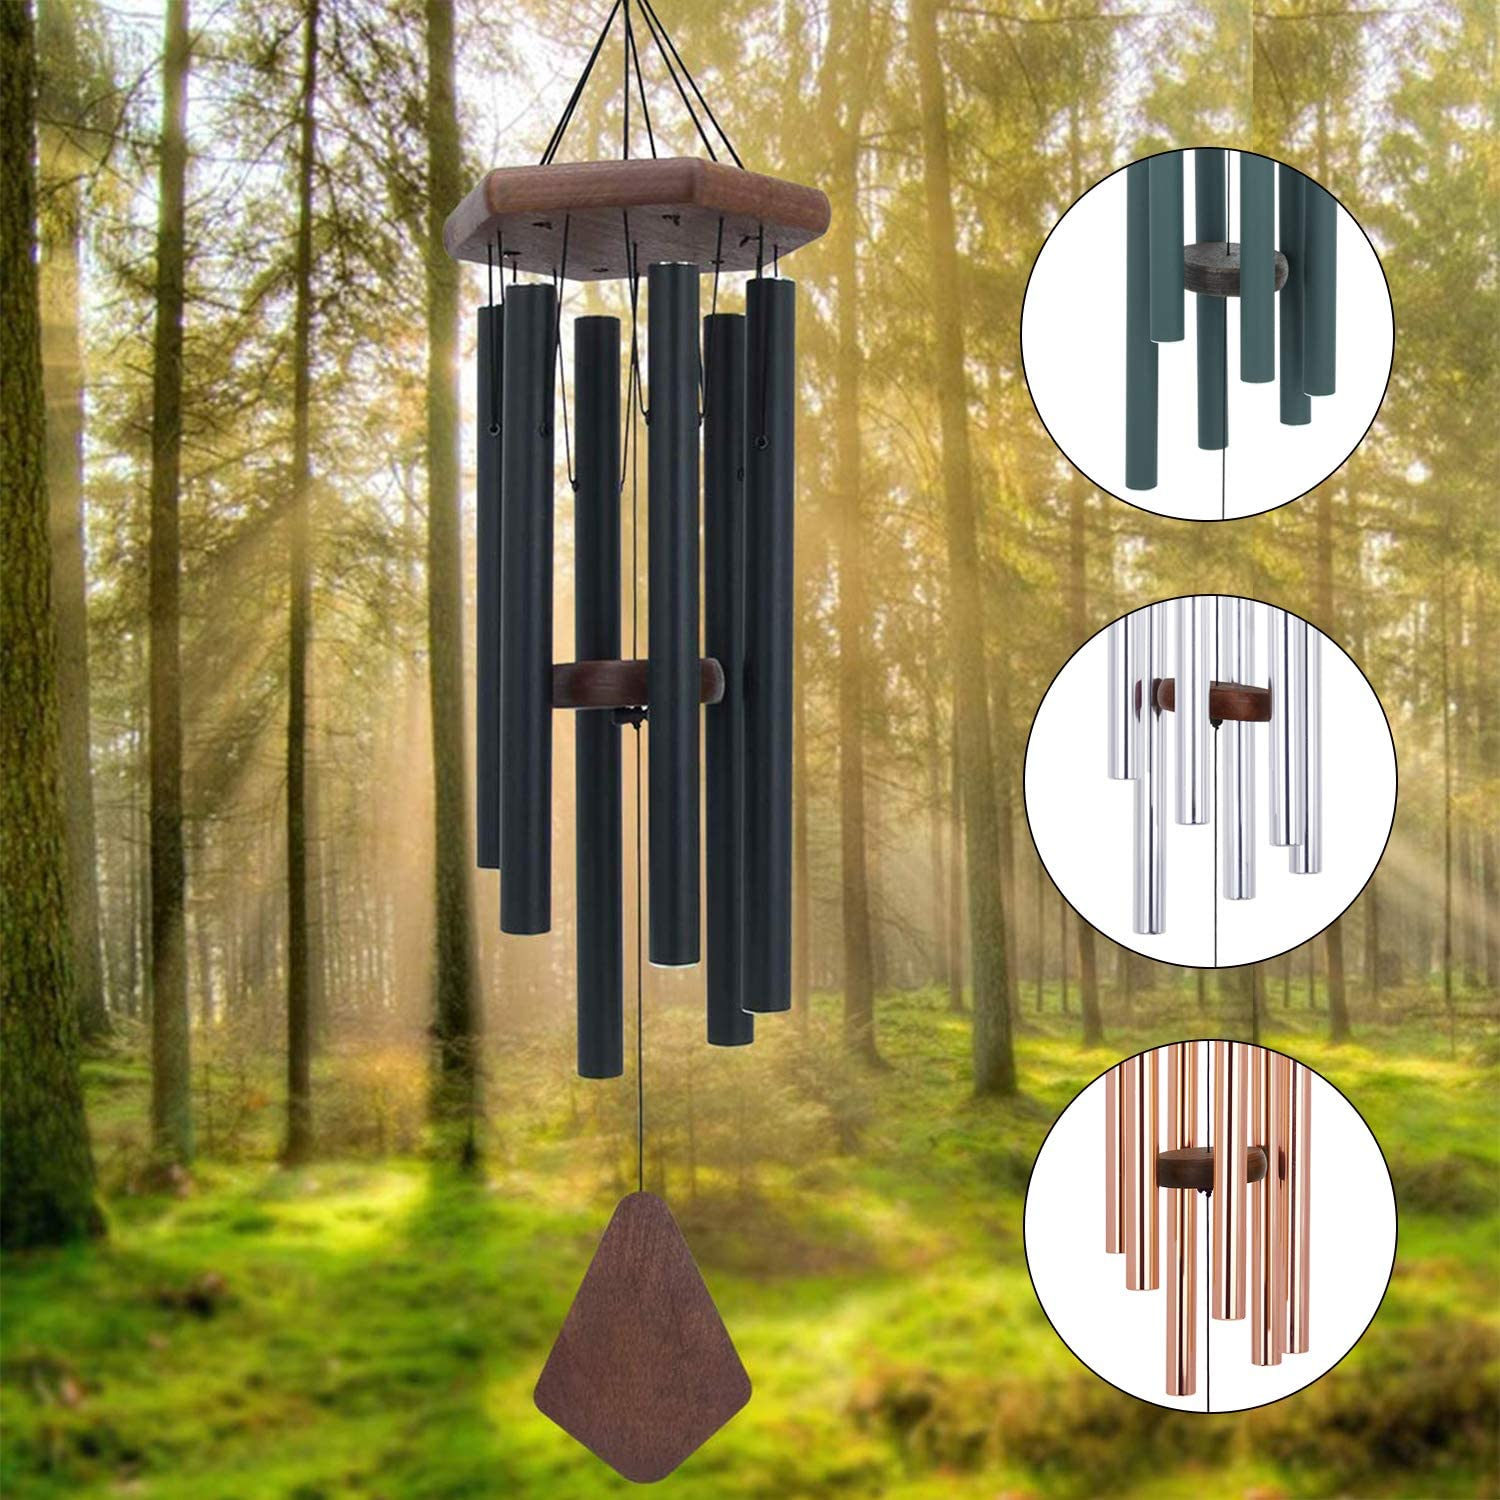 Memorial Wind Chimes Outdoor Deep Tone, 30 Inches Amazing Grace Wind Chime Outdoor, Sympathy Wind-Chime Personalized With 6 Tuned Tubes, Elegant Chime For Garden, Patio, Balcony And Home, Matte Black